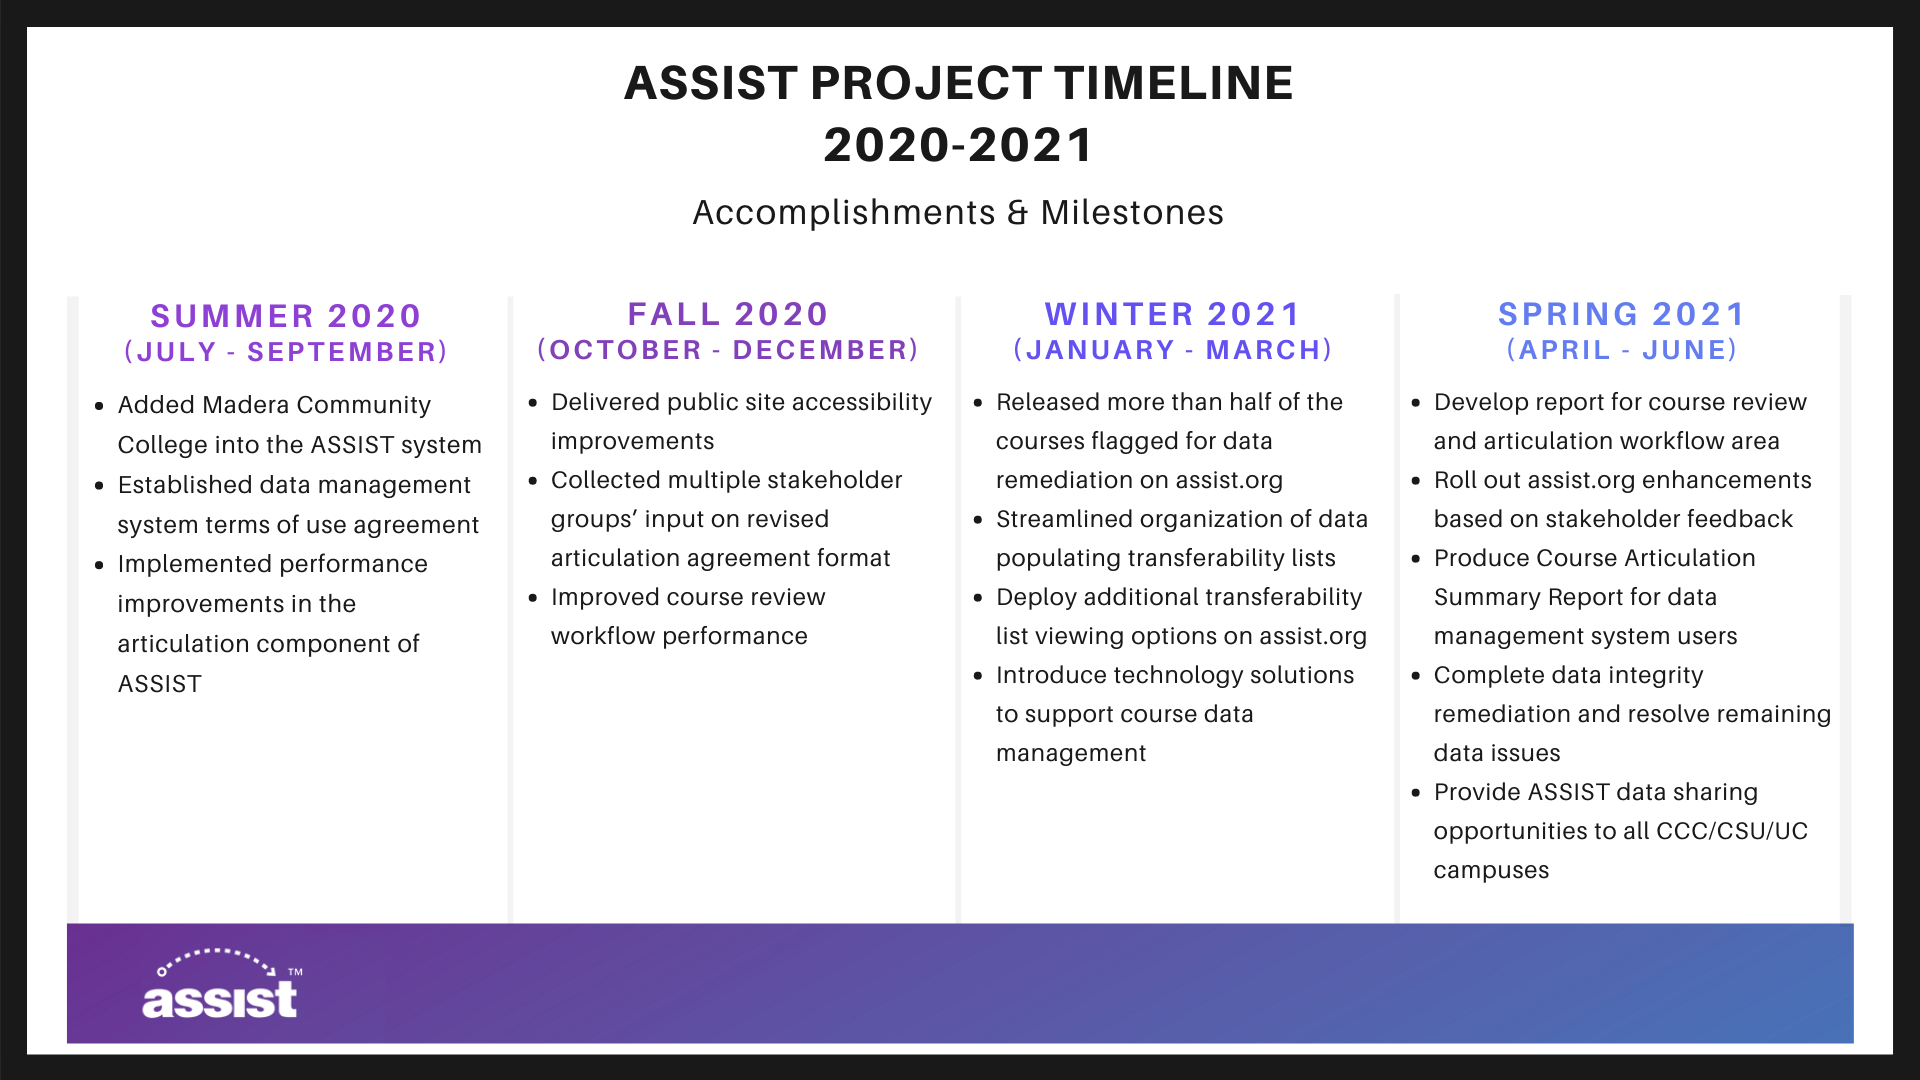 ASSIST Project Timeline - July 2020 through June 2021